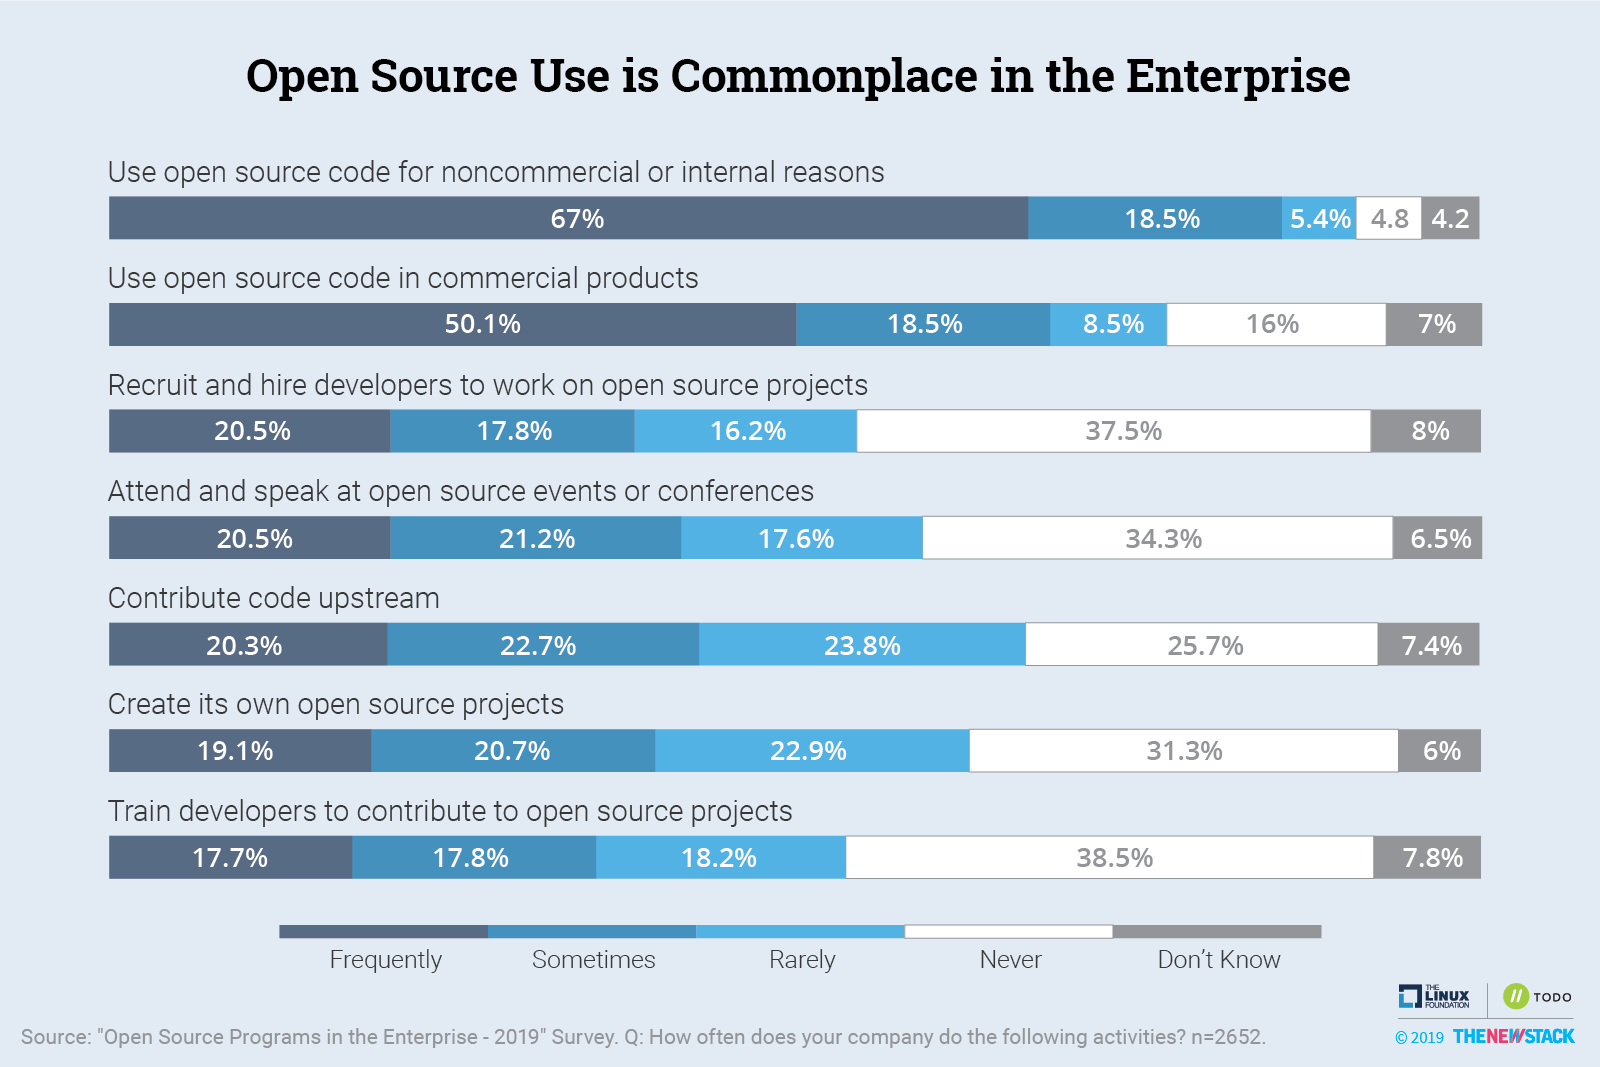 Open Source Use is Commonplace in the Enterprise